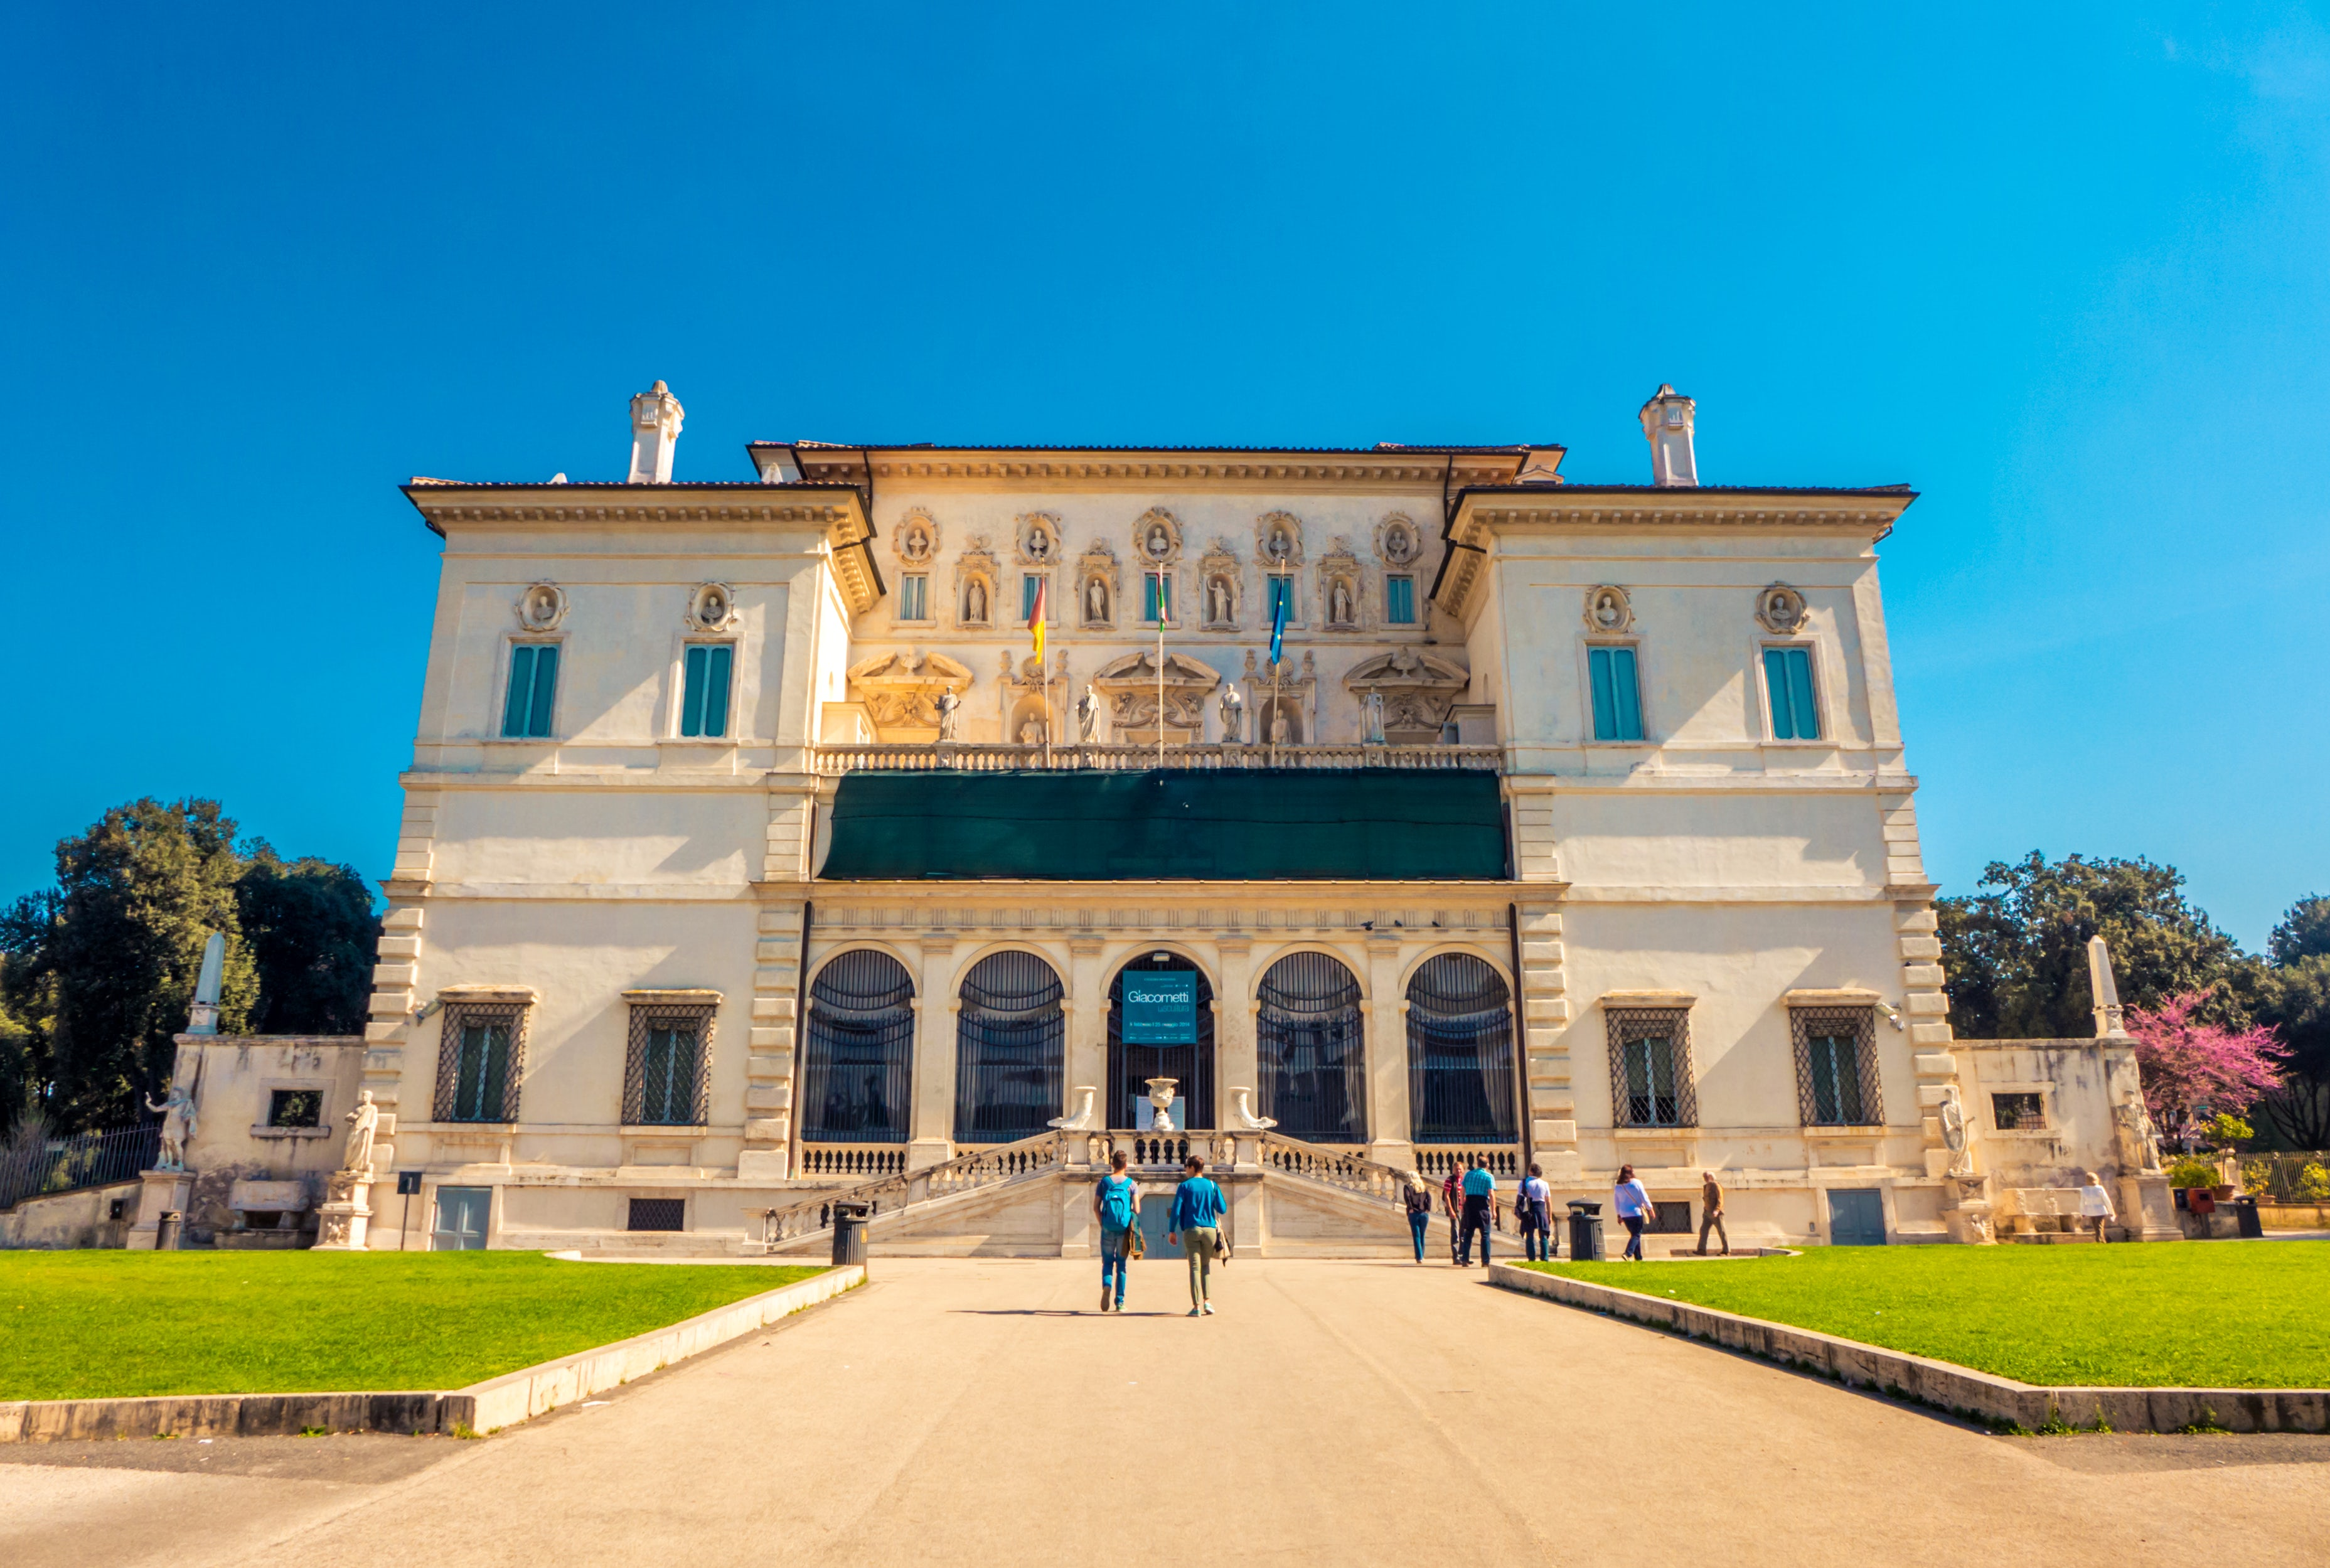 The Museums of Rome: Galleria Borghese